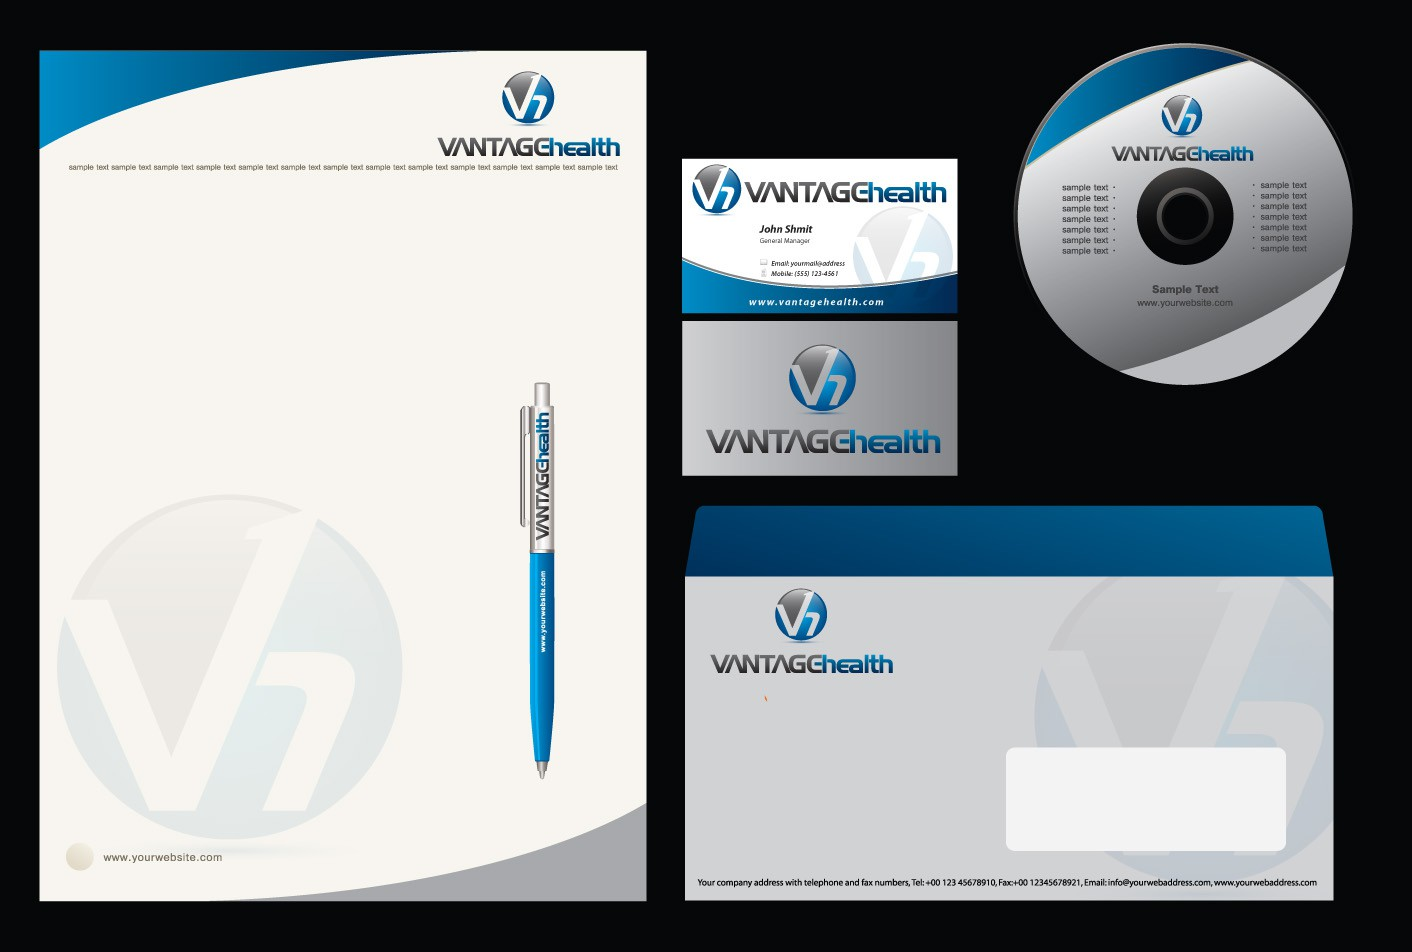 Vantage Health needs a new logo and business card